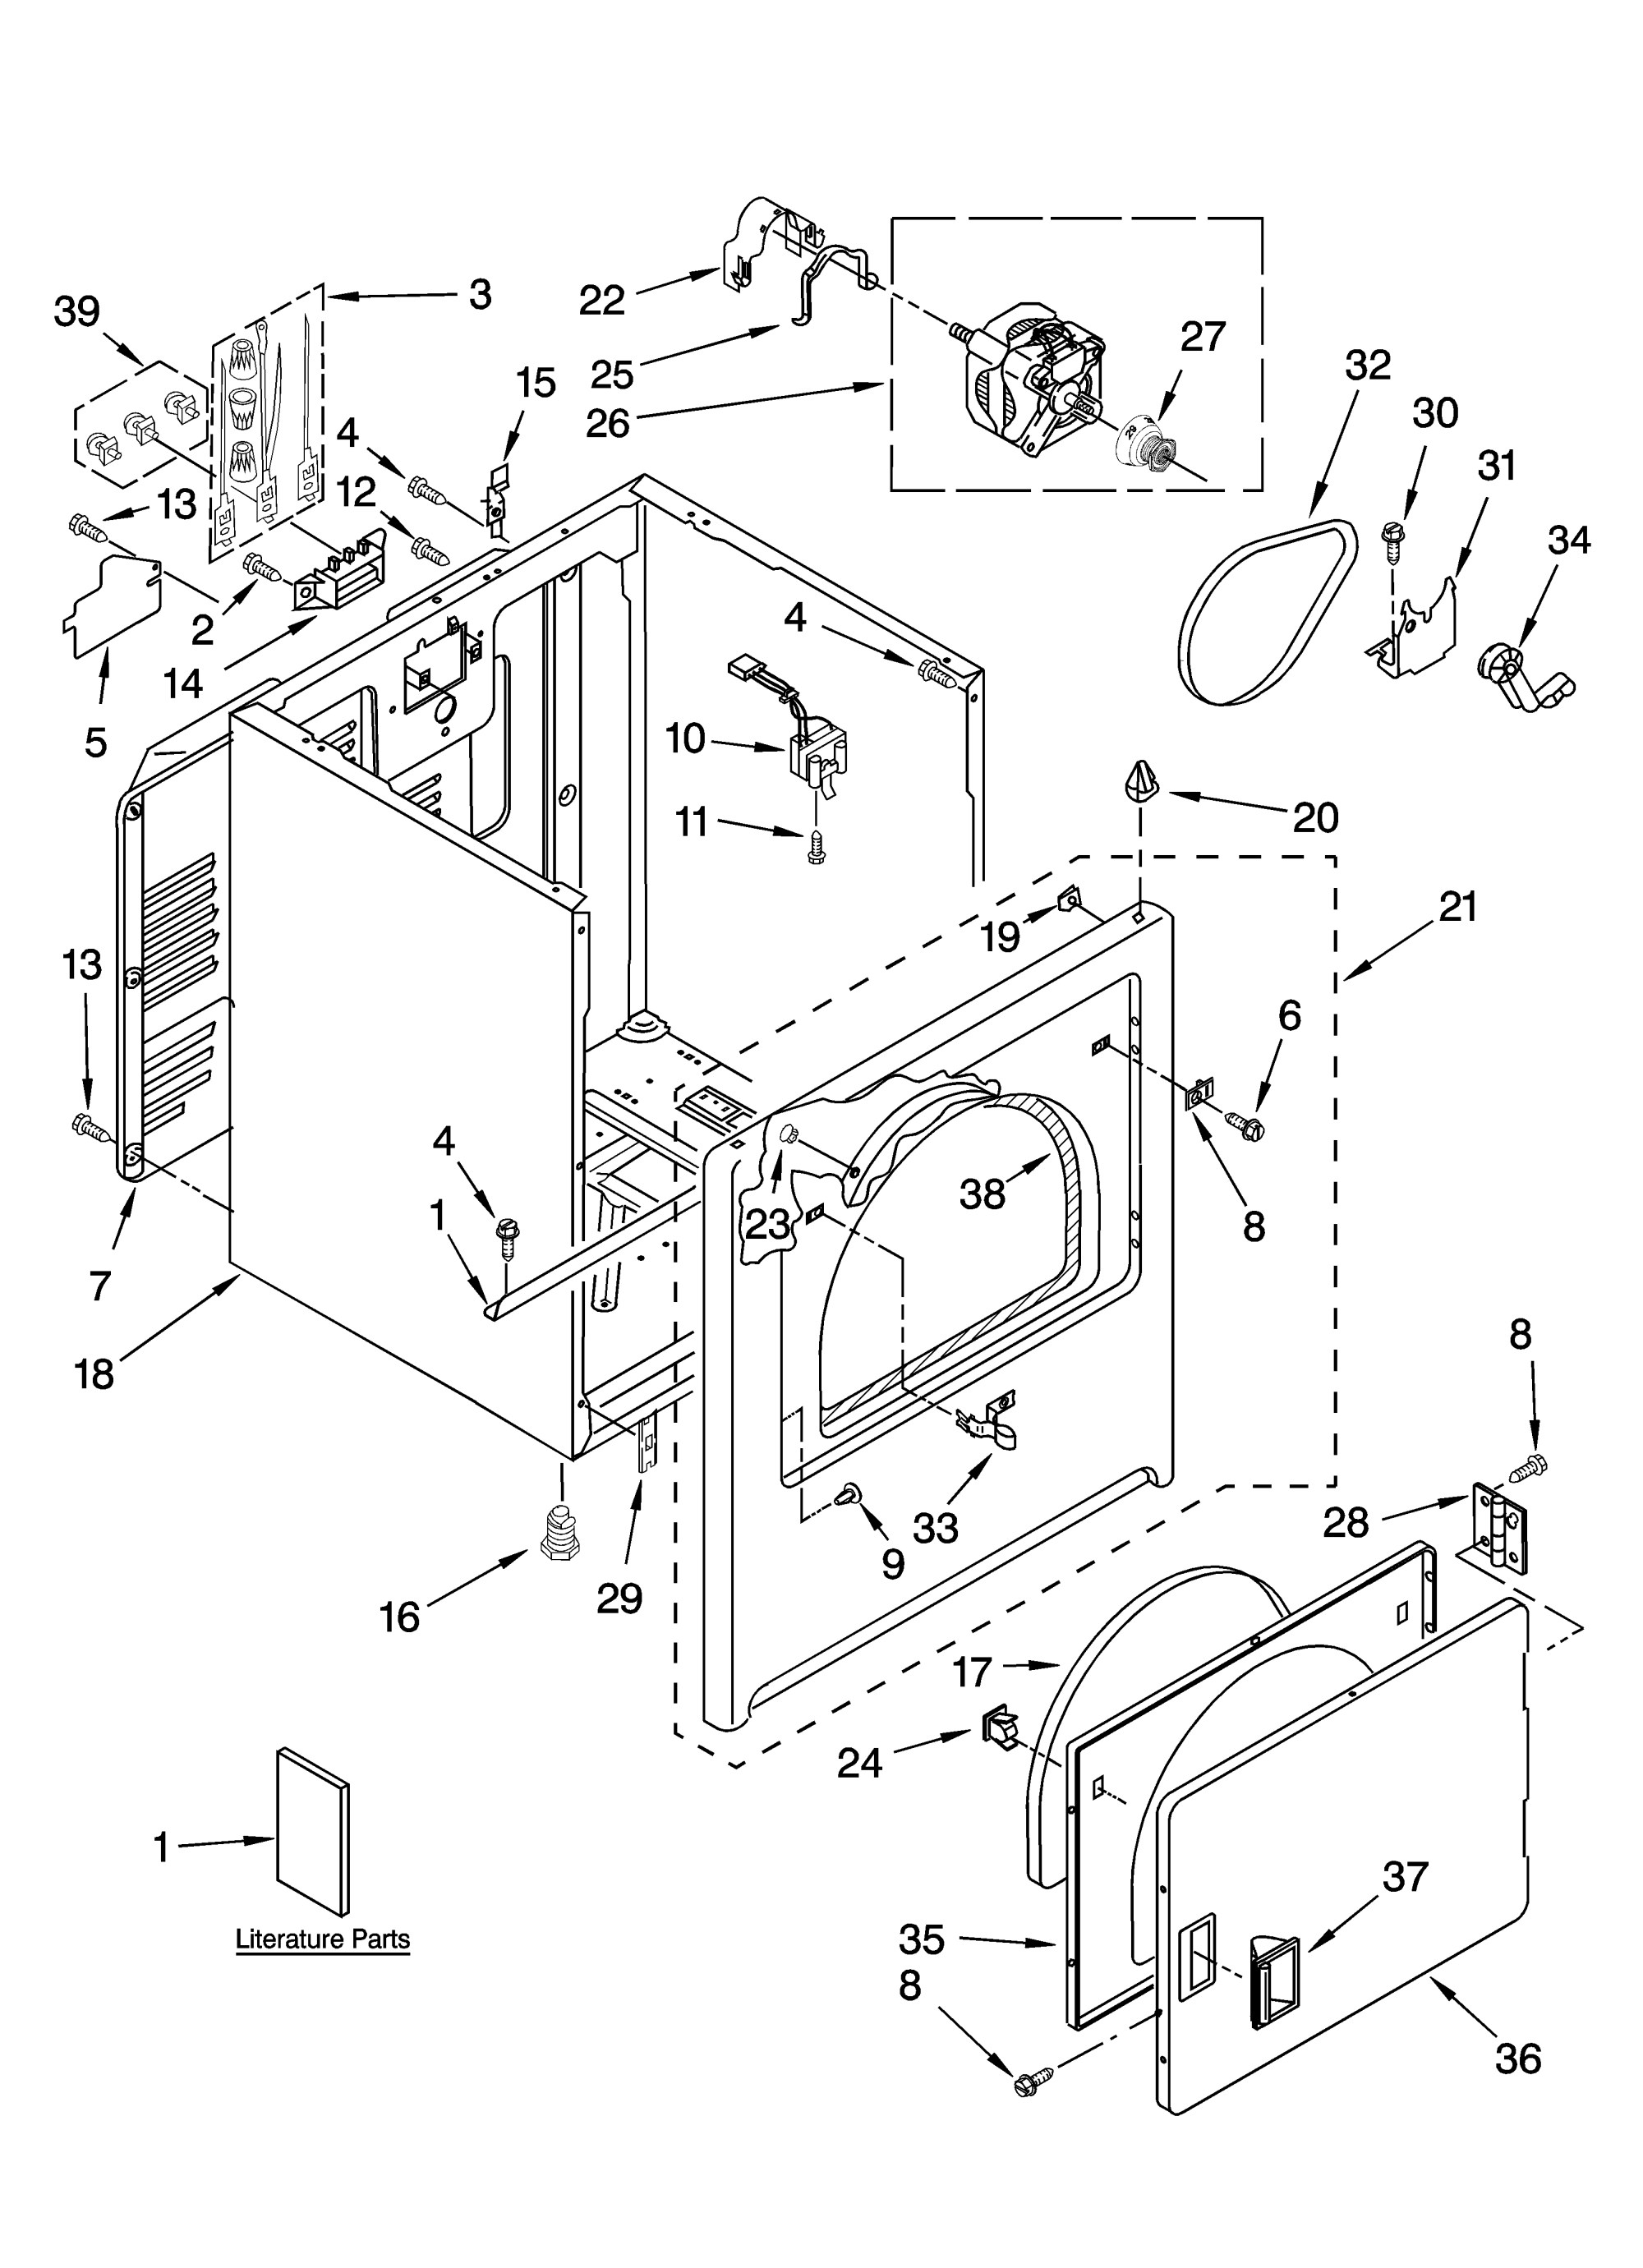 hight resolution of admiral dryer wiring diagram download admiral dryer parts diagram unique admiral admiral laundry parts model